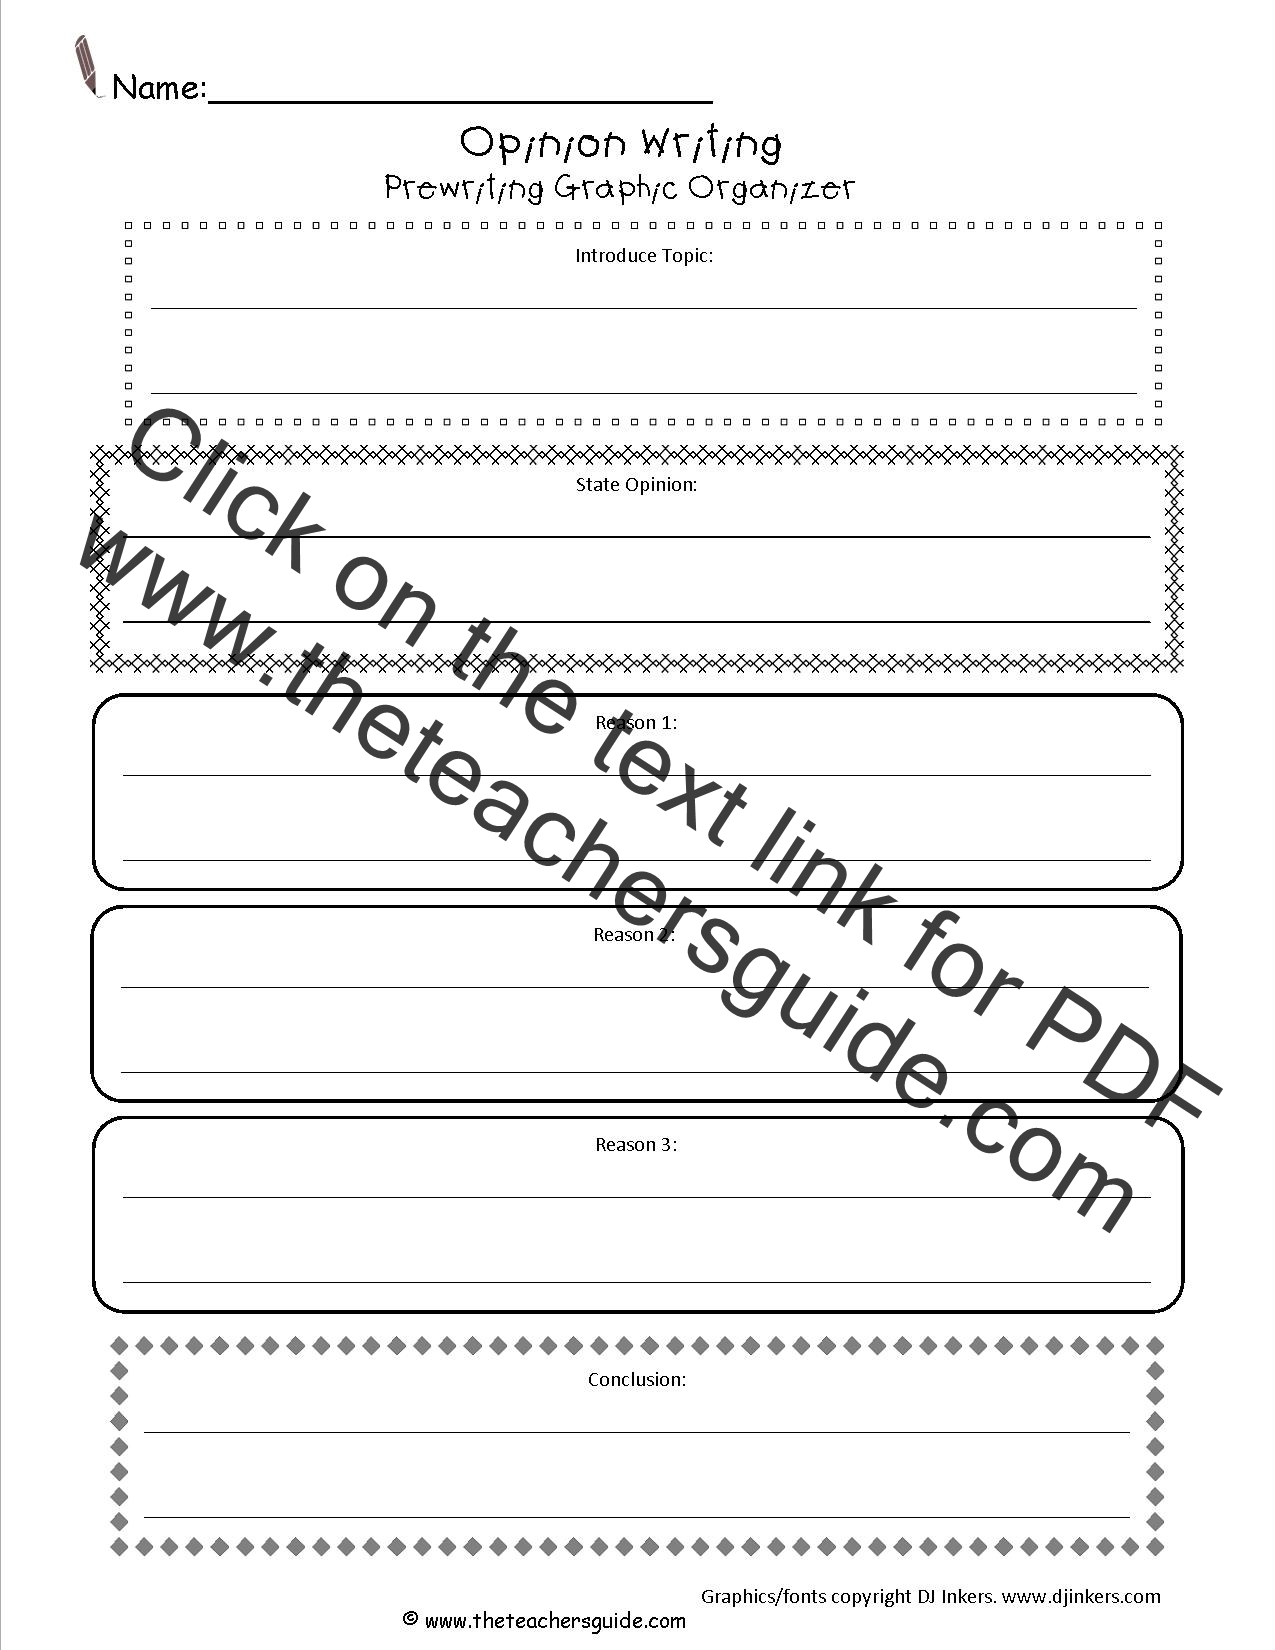 Opinion Writing Lesson Plans Themes Printouts Crafts – Fact or Opinion Worksheets